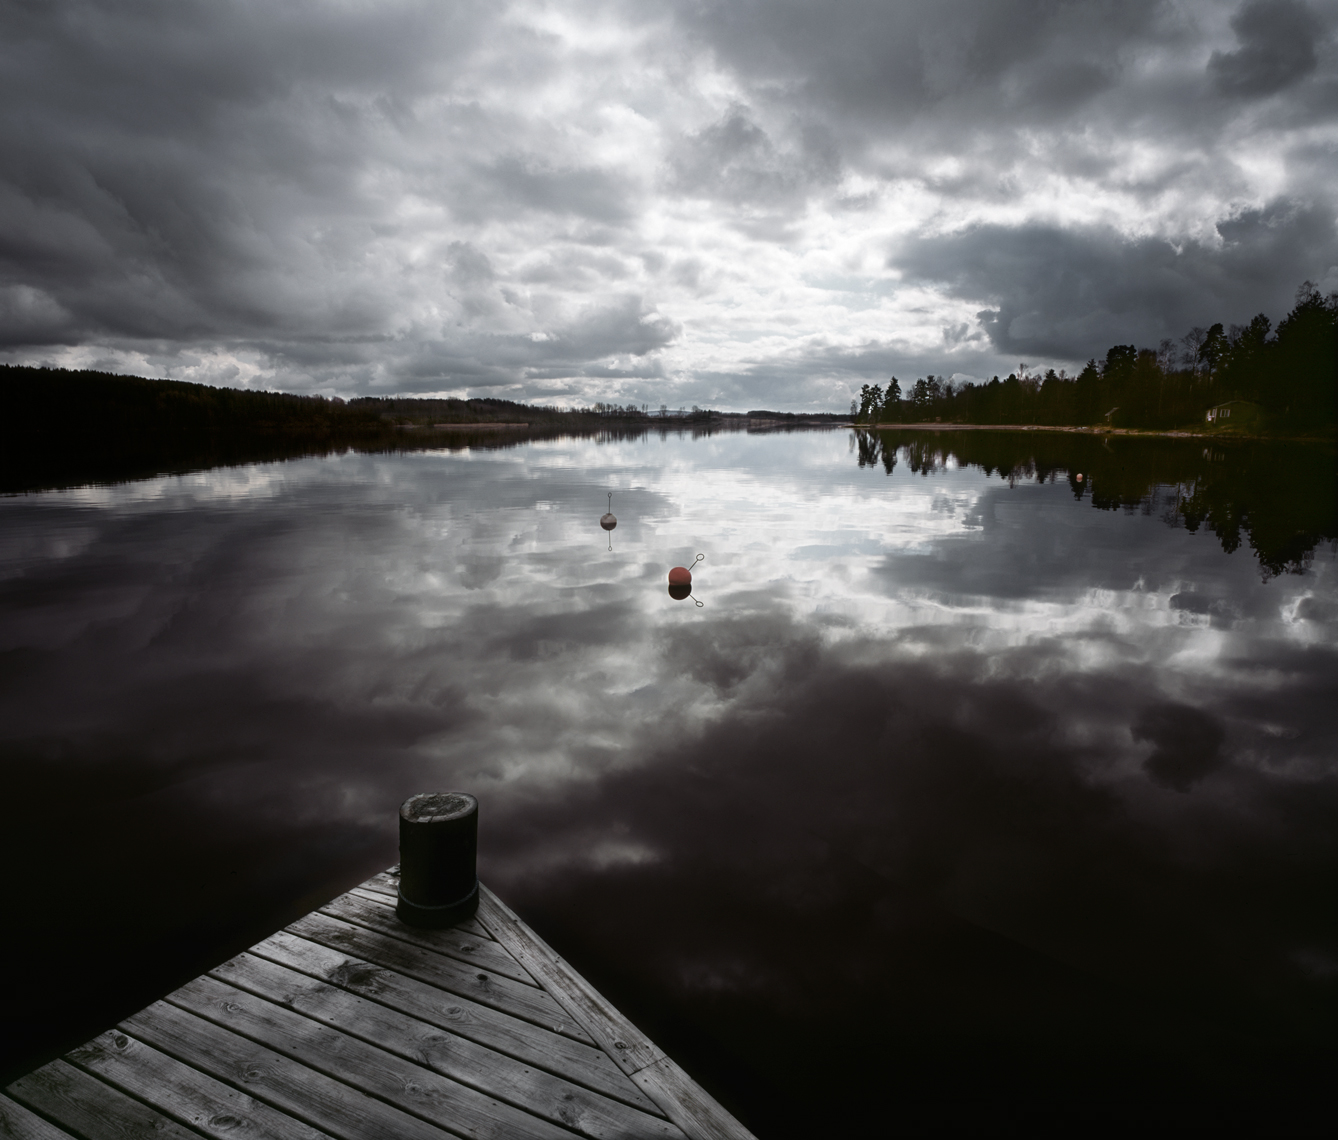 Jon Wyatt Photography - Jetty on Lake Fryken, Varmland, in Norway